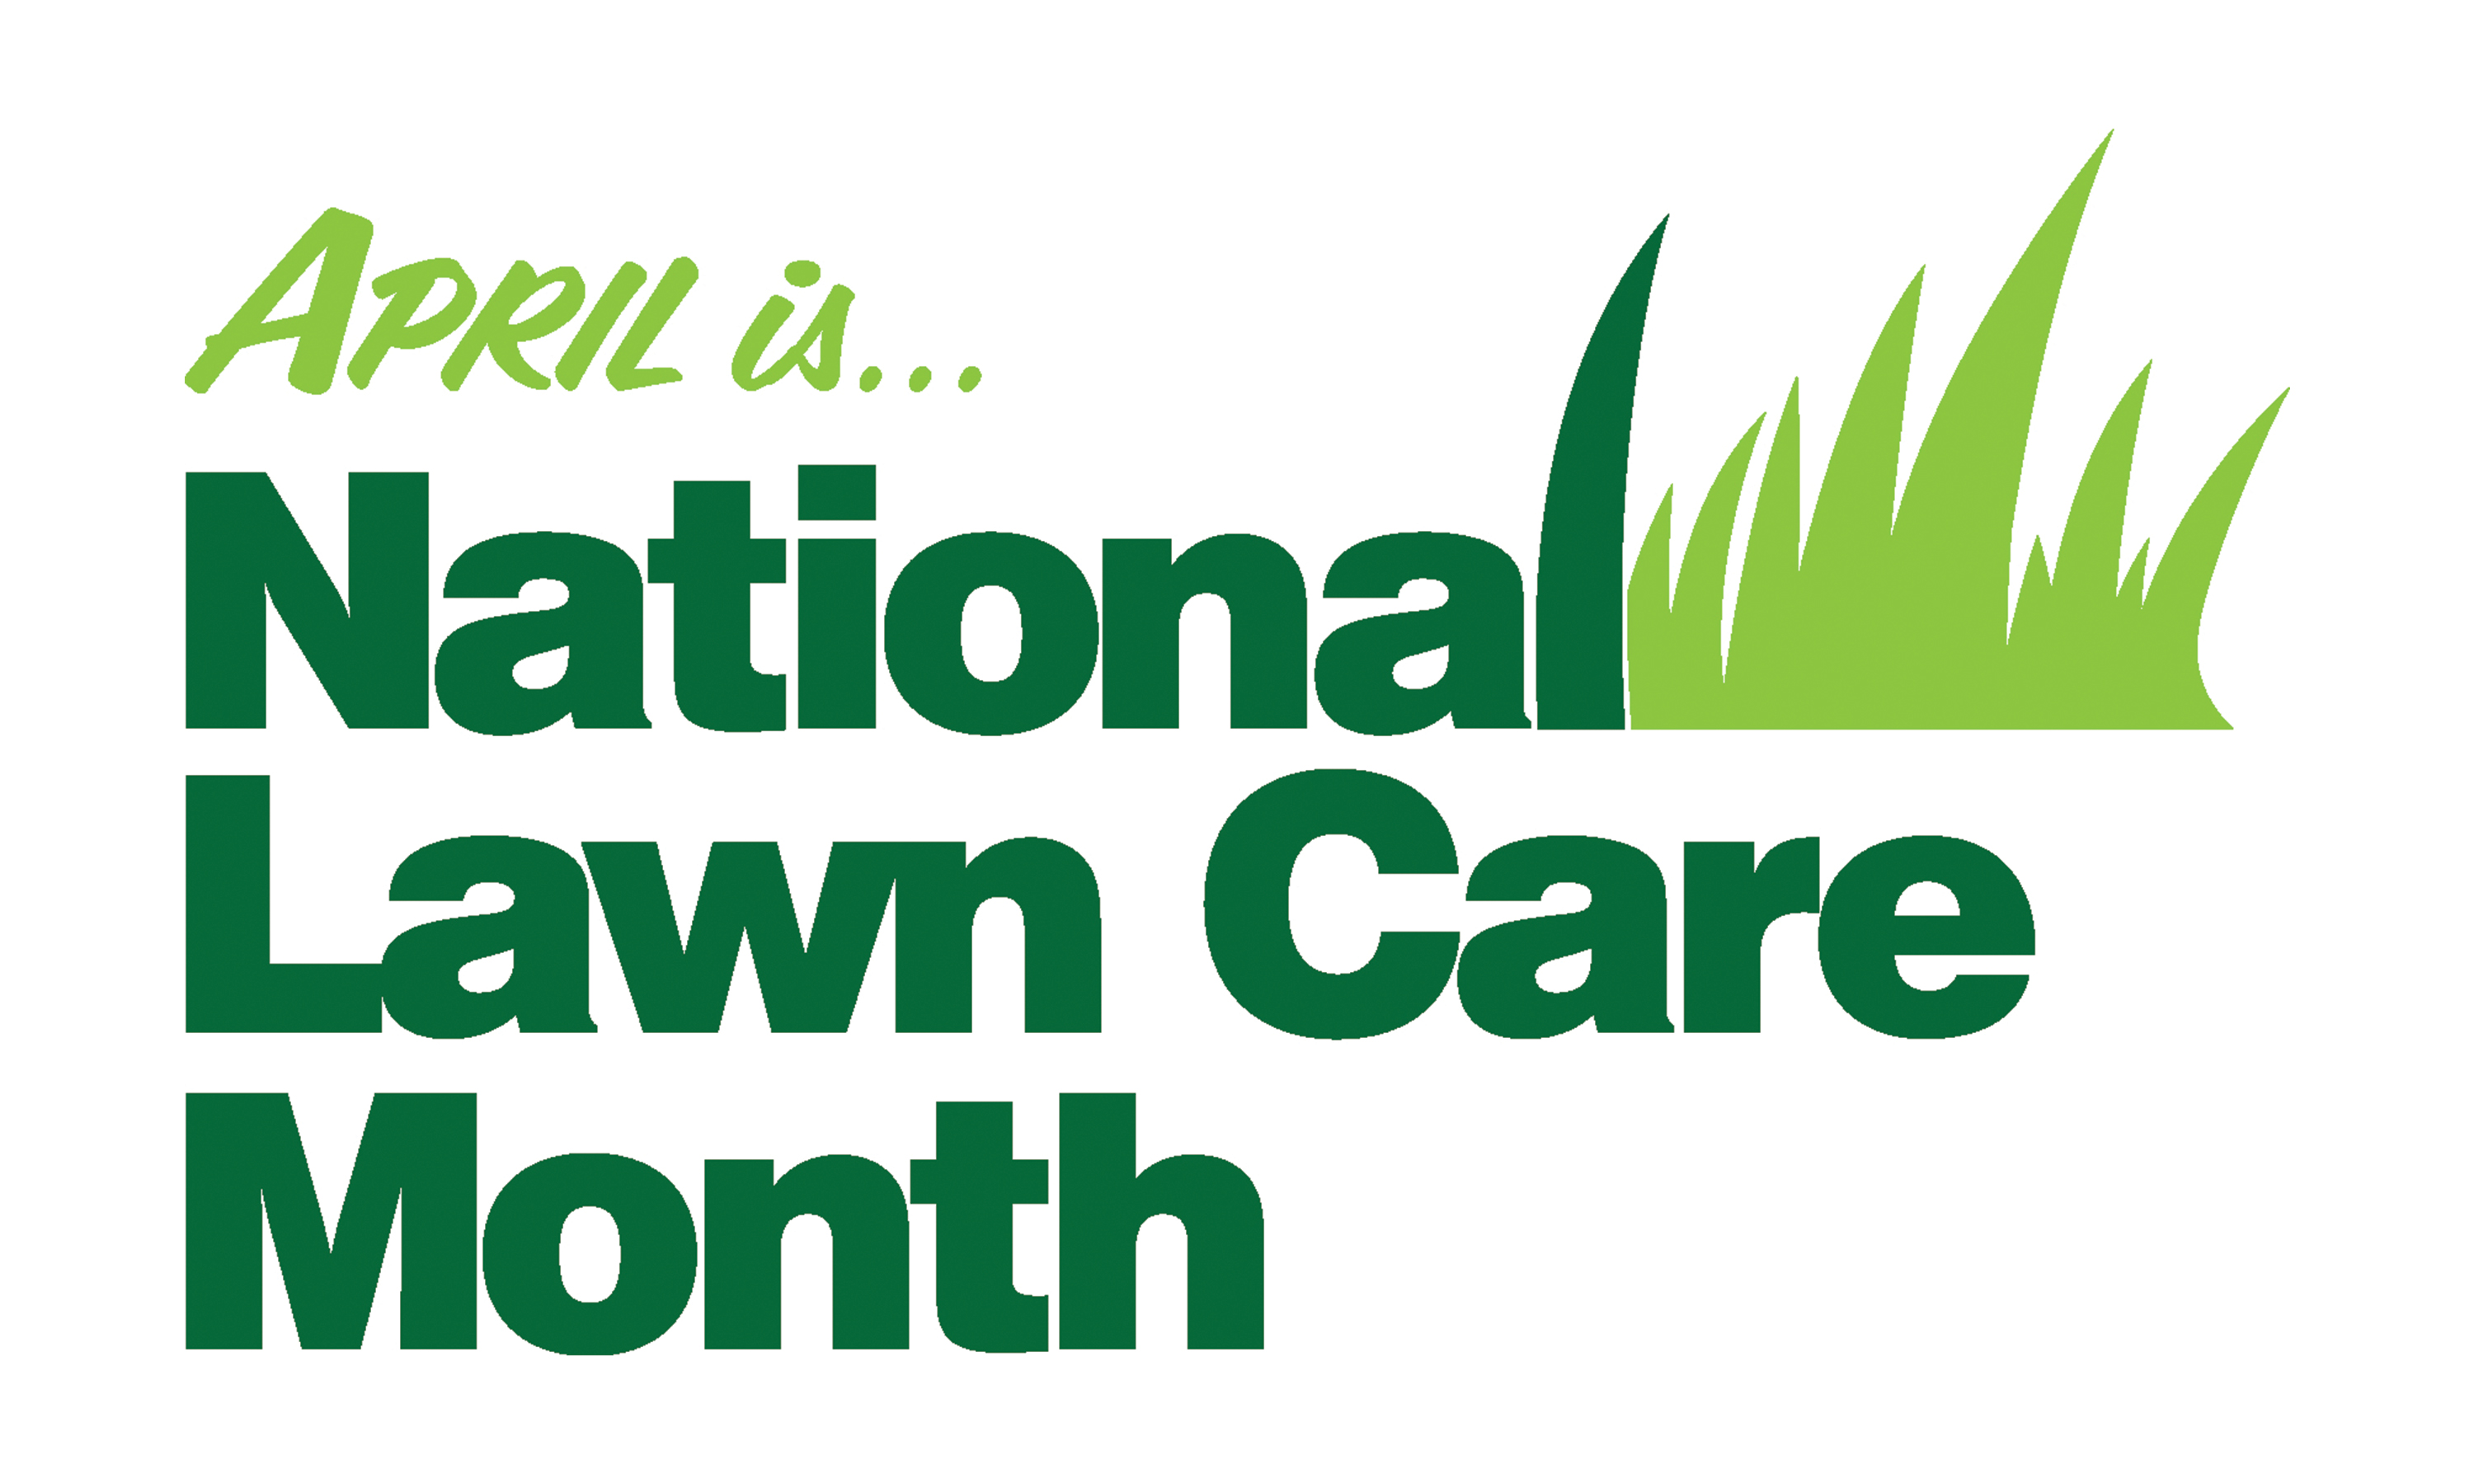 Celebrating National Lawn Care Month in April